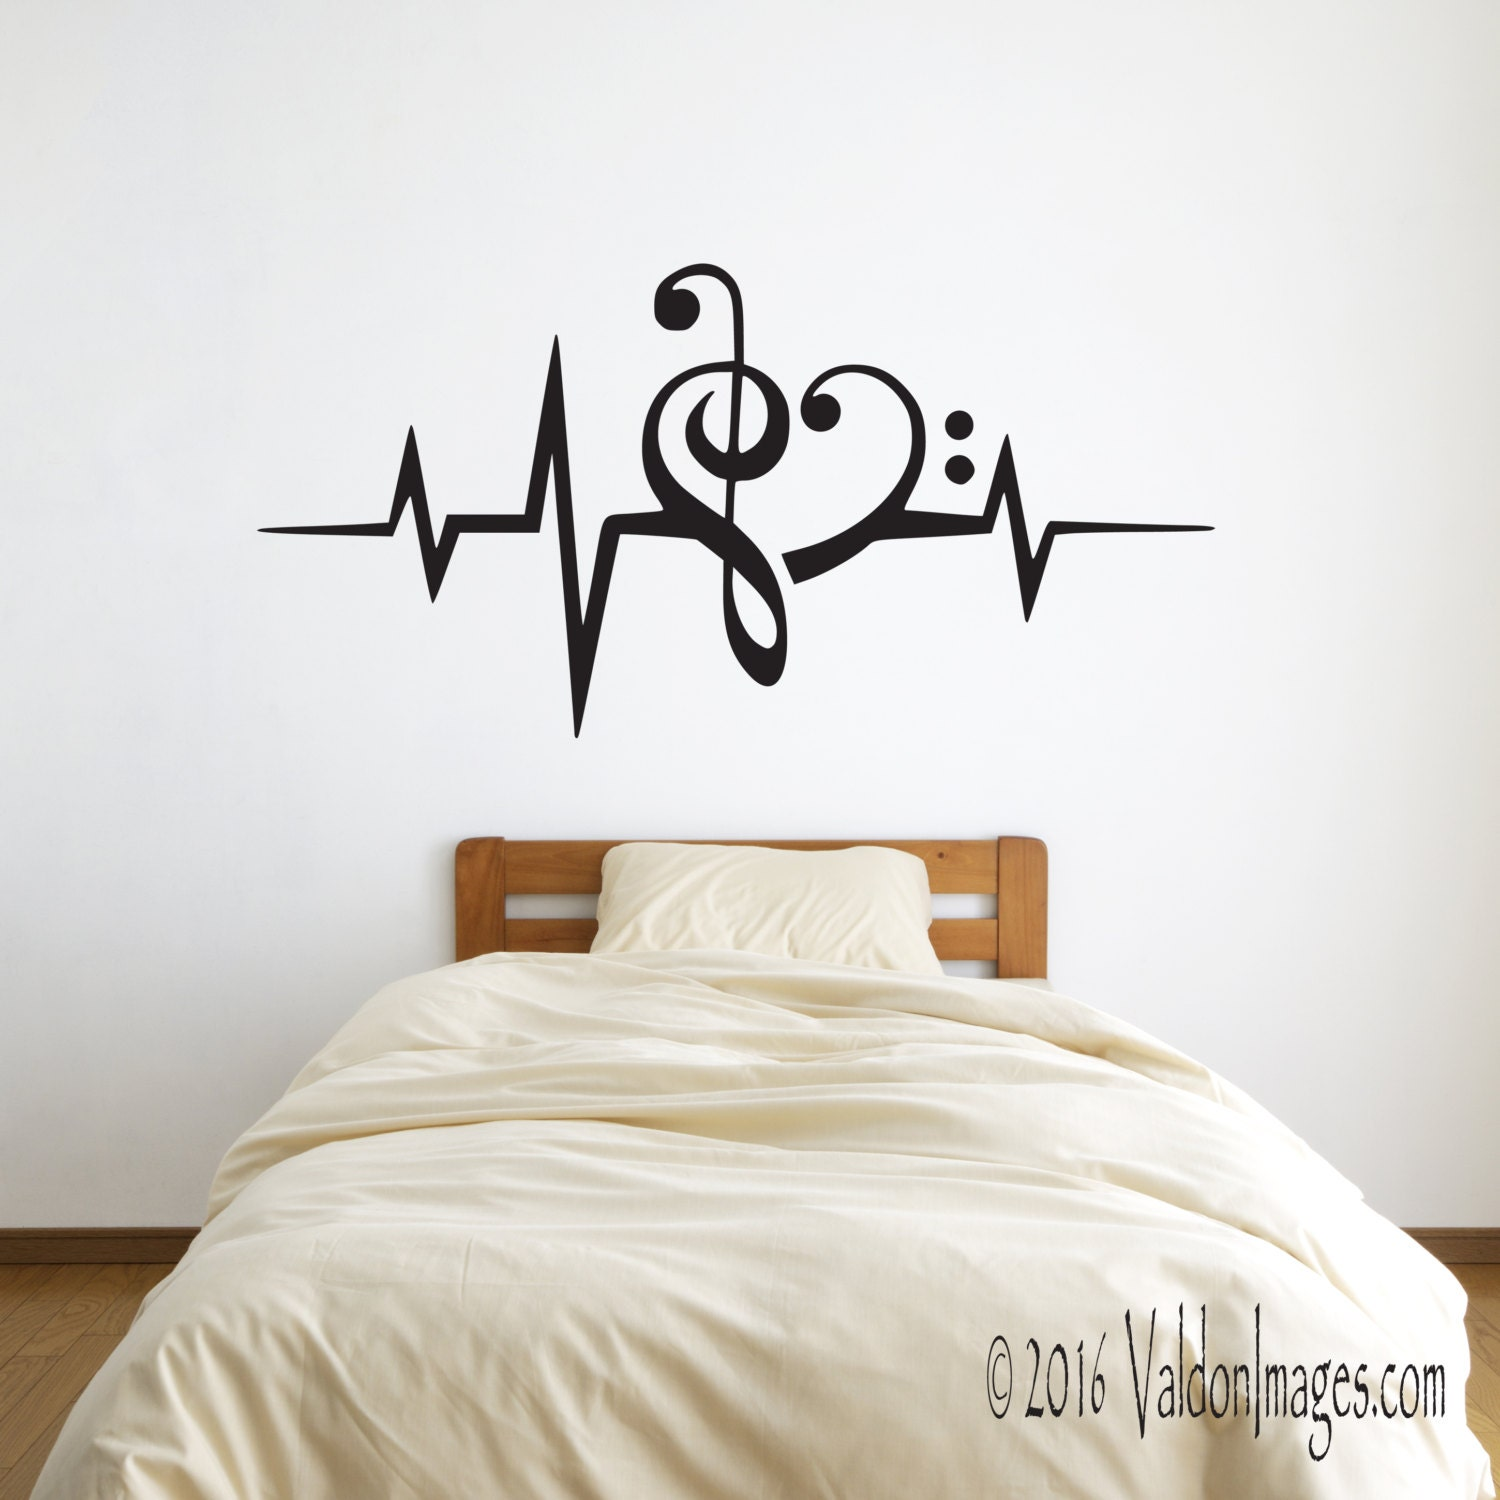 Heartbeat Music Lover Wall Decal Heart Decal Music Decal